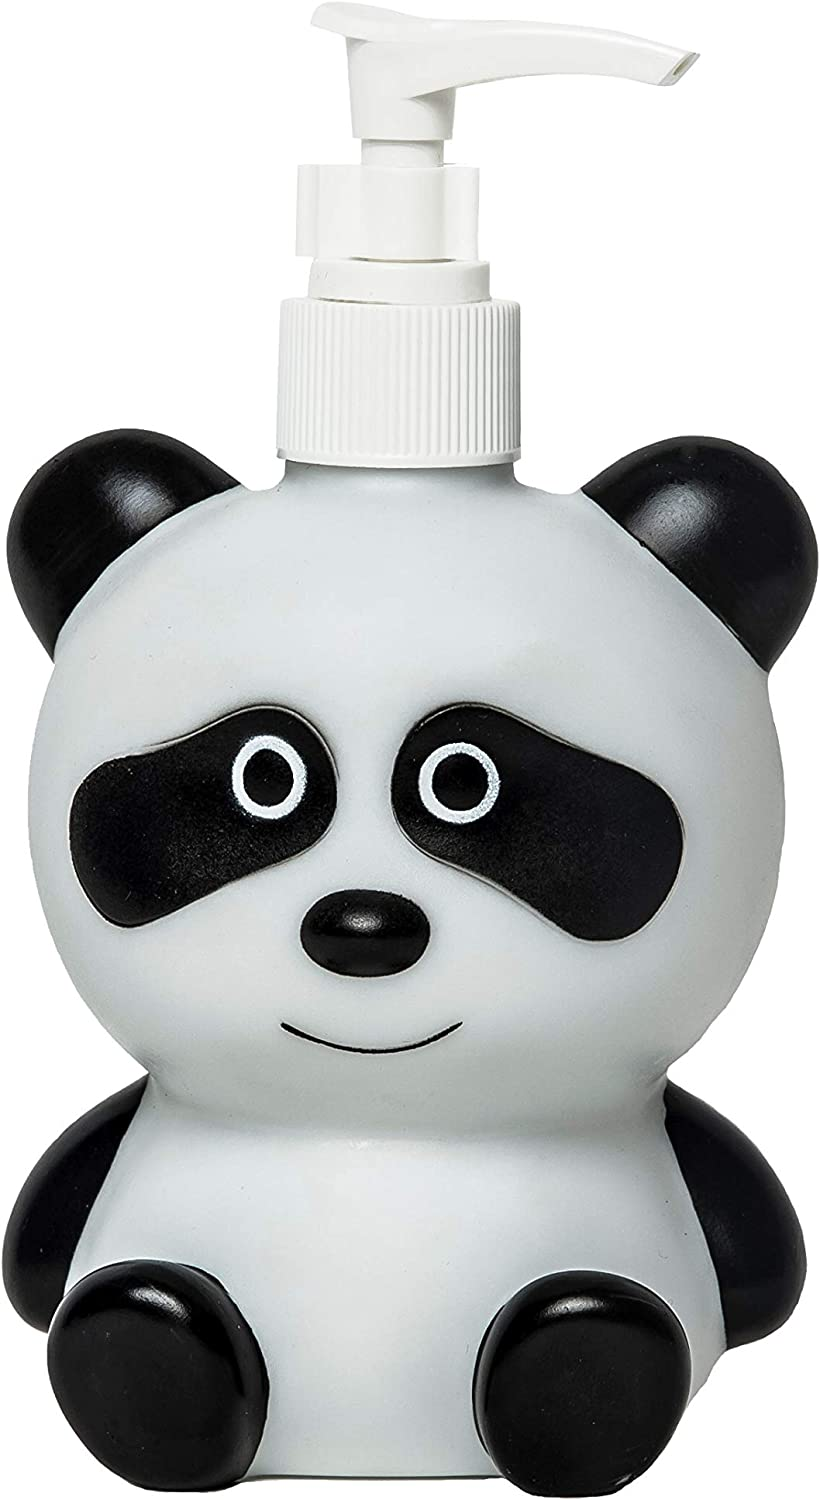 FAPU Vinyl Panda Refillable Hand Soap Pump Dispenser Lotion Shampoo Sanitizer Bottle 11.8oz Kids Adults Friendly for Kitchen and Bathroom Accessories Cute Animal Look (White)